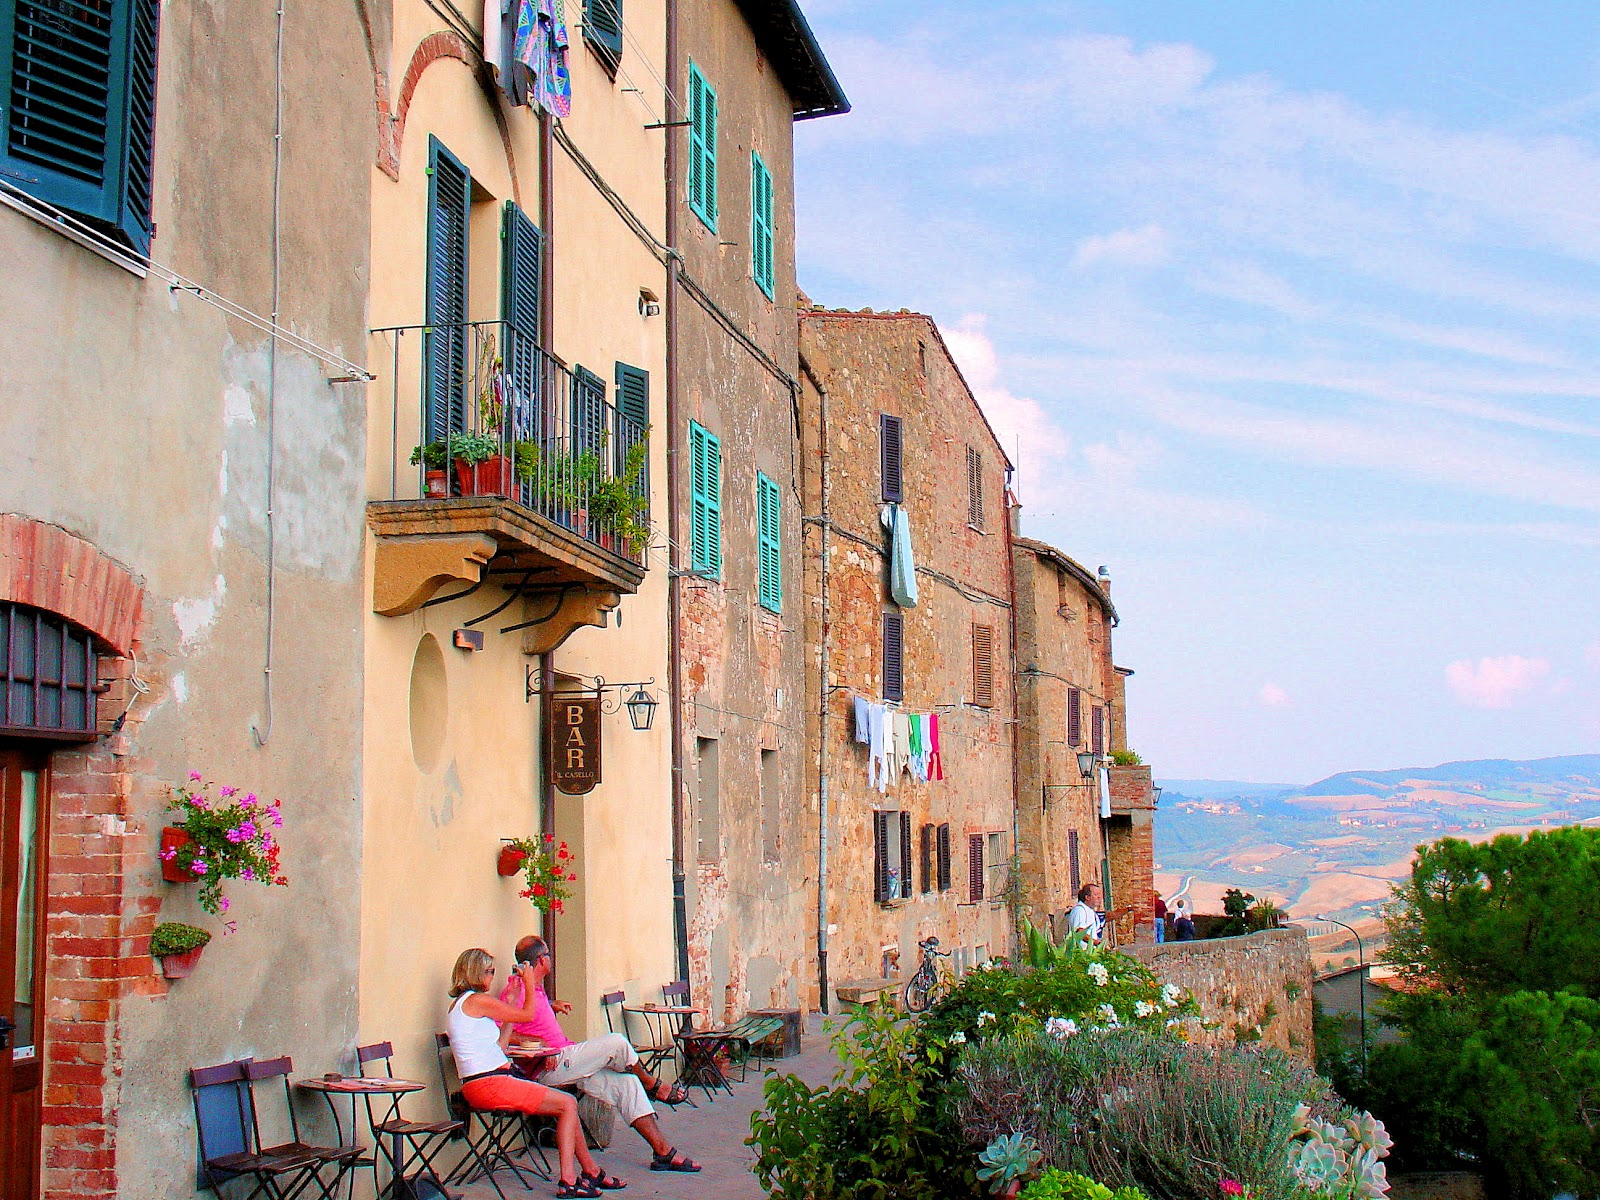 Italy Tuscany Pienza Landscape Of Village And Valley